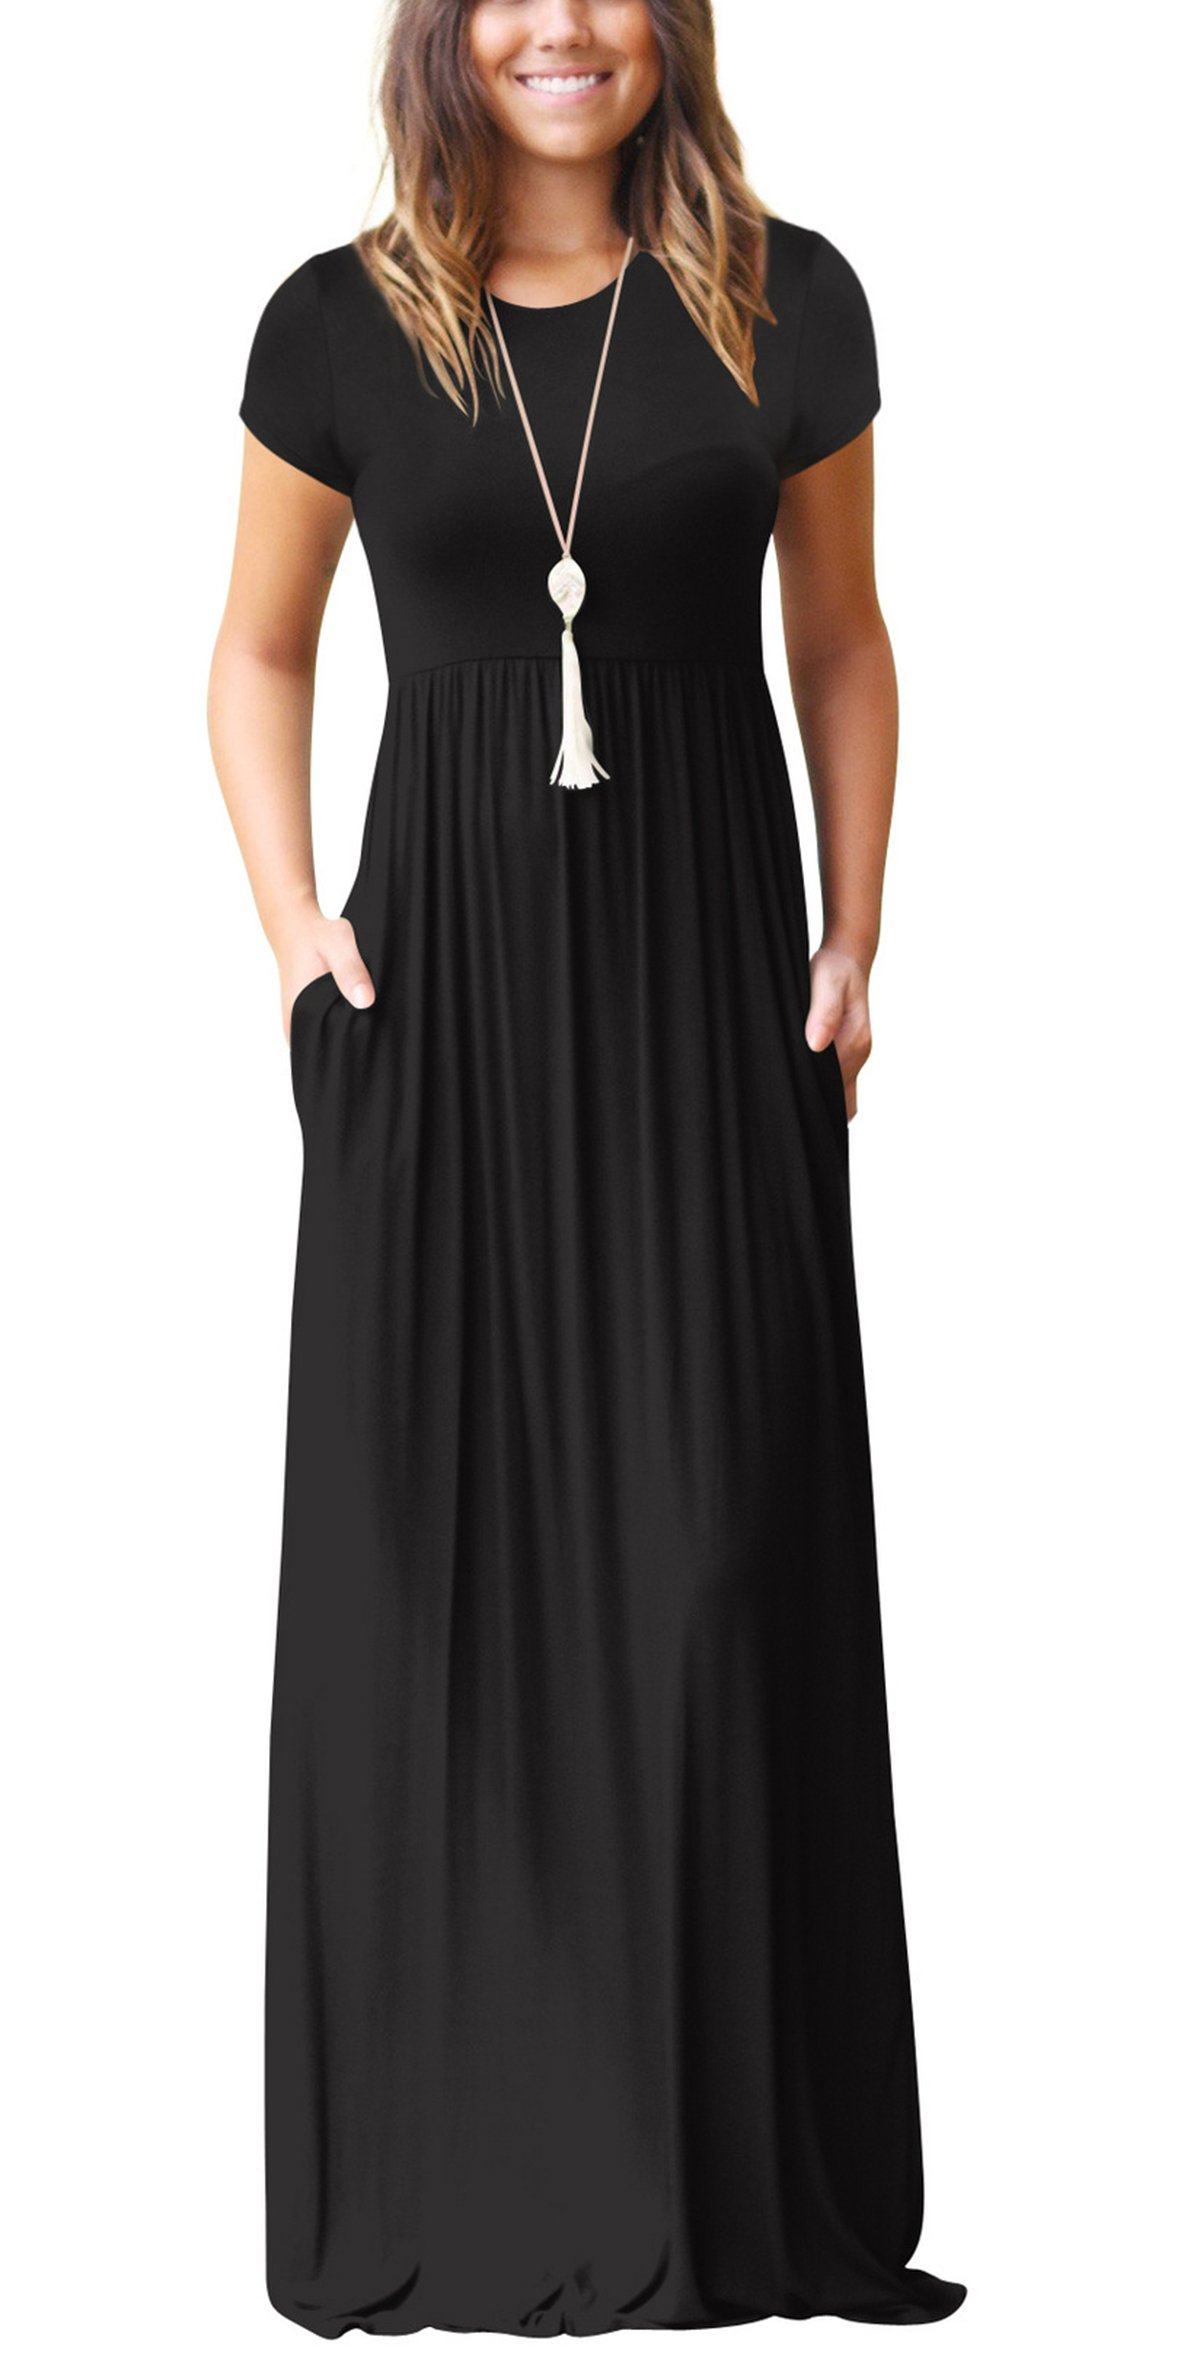 Freemale Womens Short Sleeve Crewneck Solid Casual Long Maxi Dresses with Pockets Plus Size